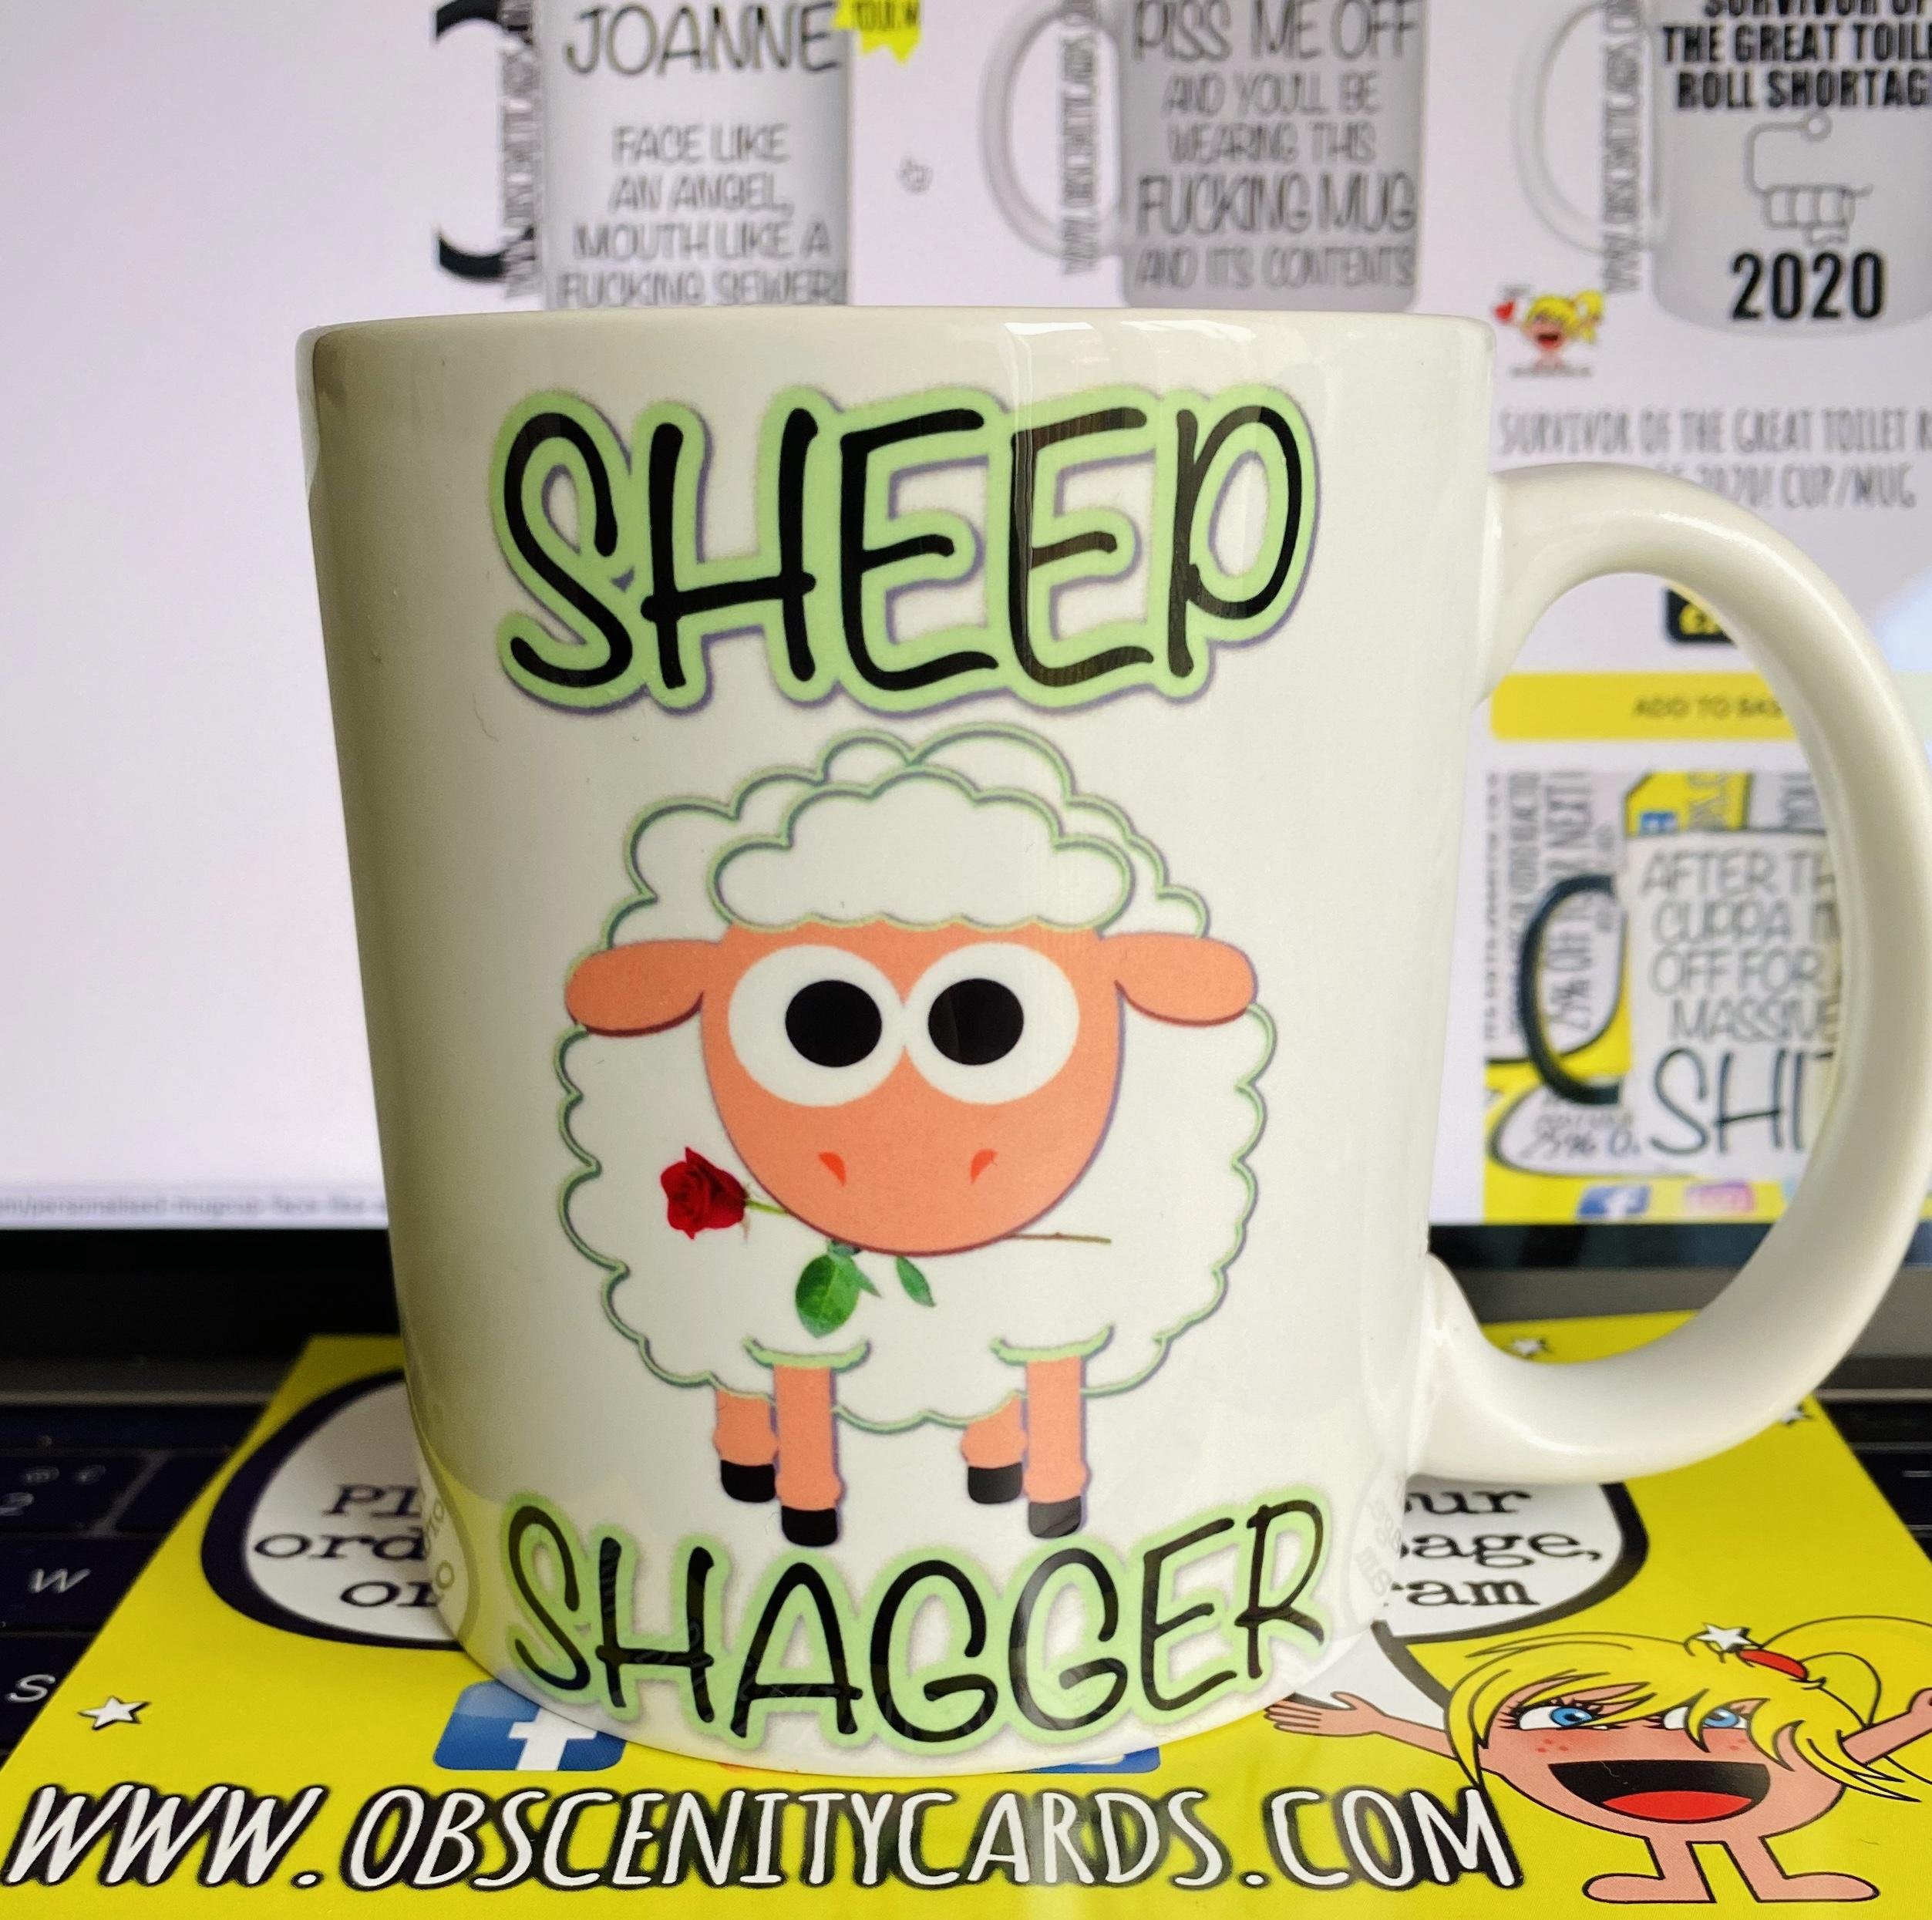 SHEEP SHAGGER MUG / CUP